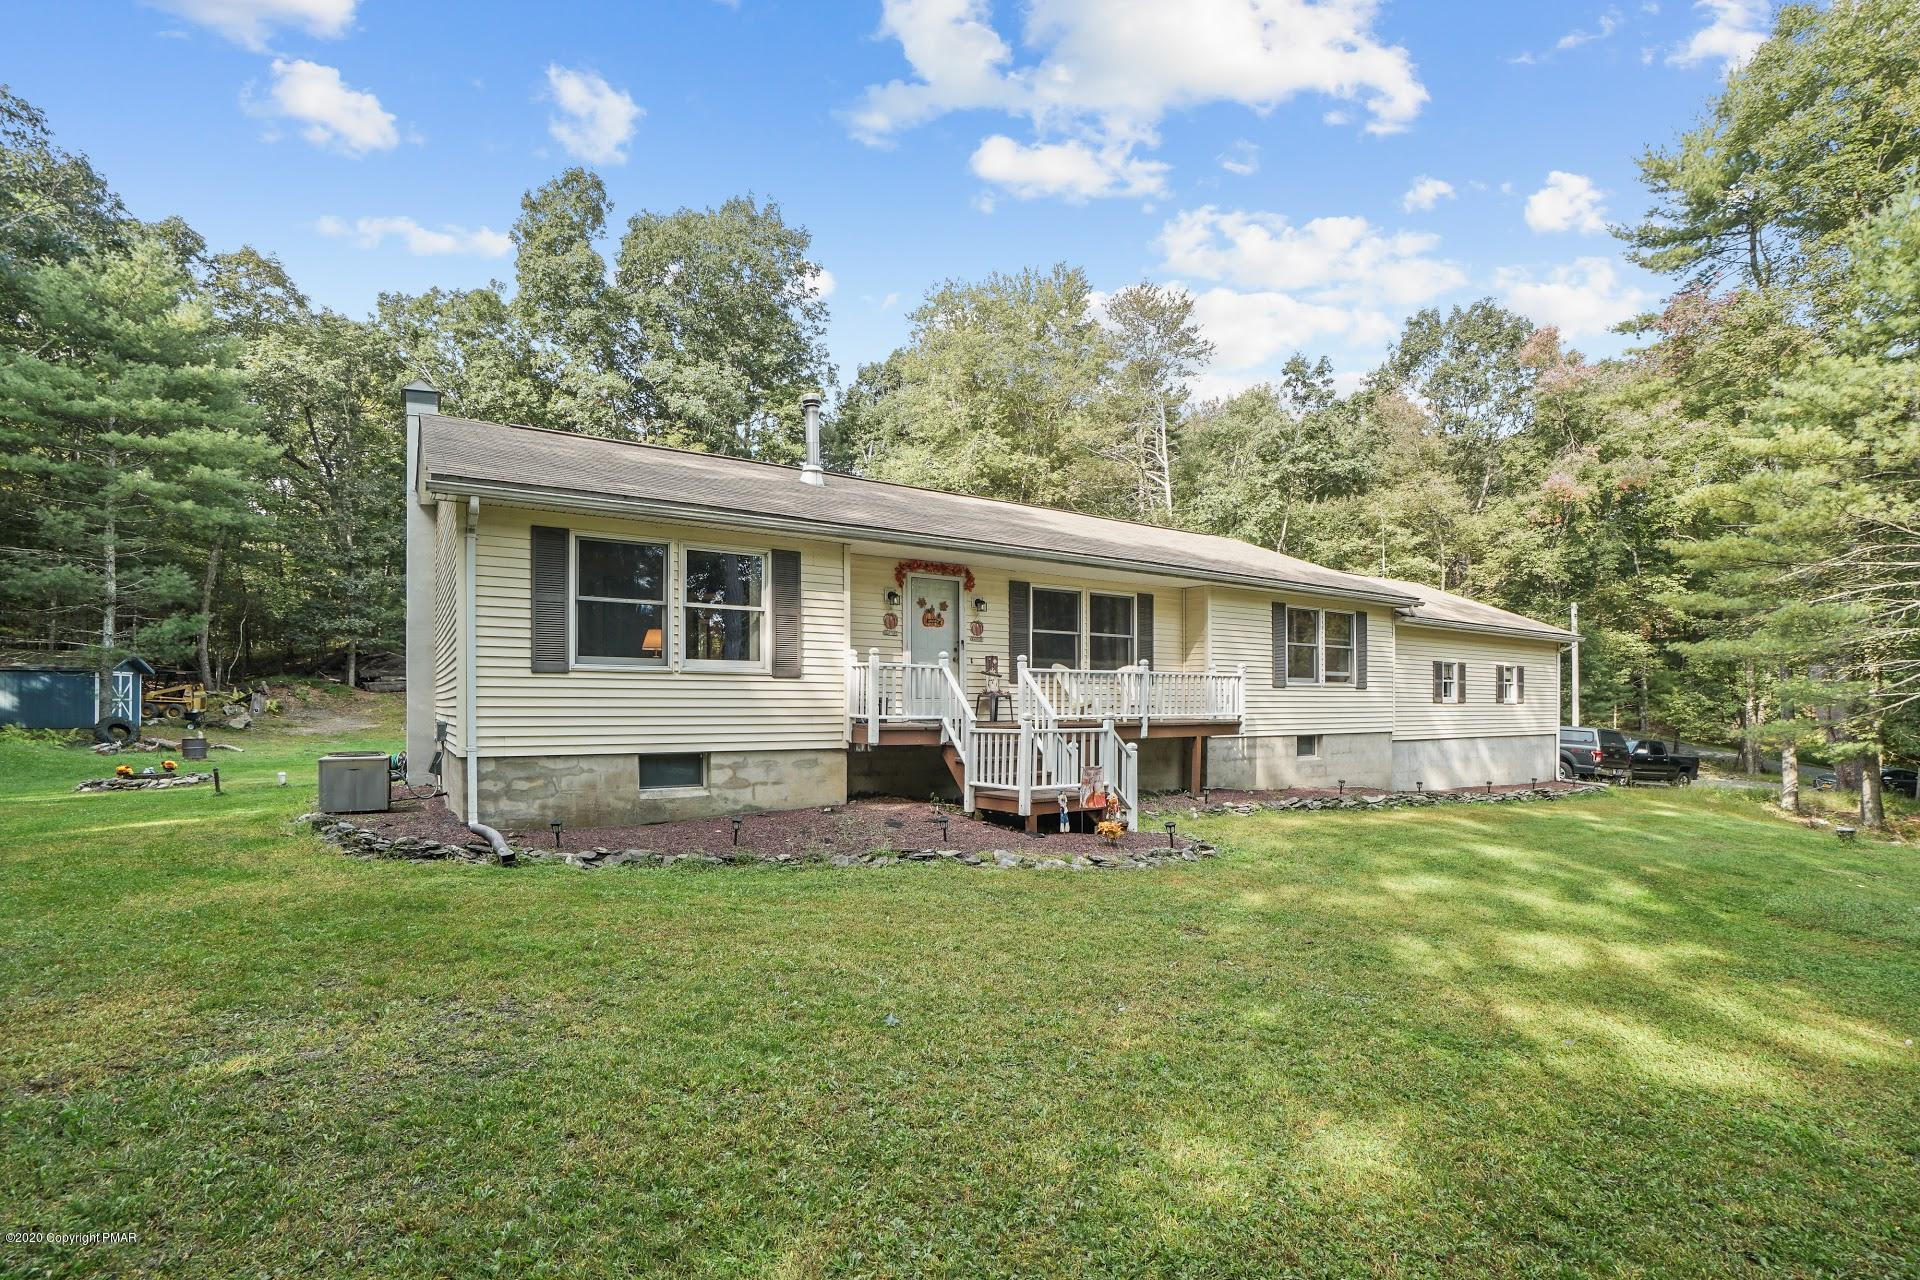 100 Joerger Ln, Dingmans Ferry, PA 18328